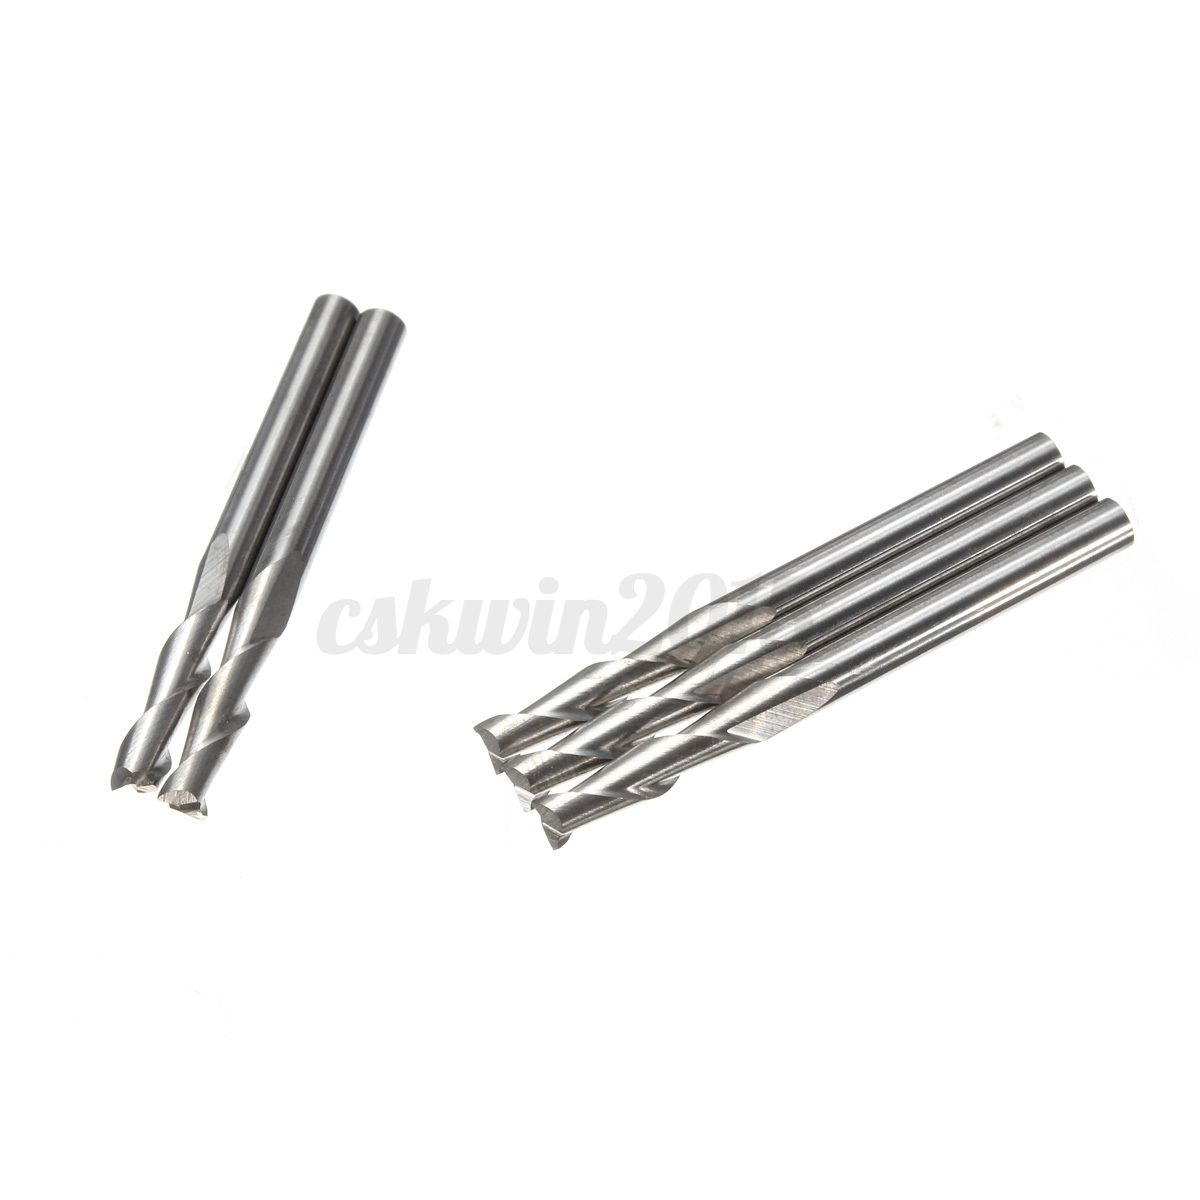 10x 1 8 Two Flute Carbide Flat Nose Engraving Cnc Router